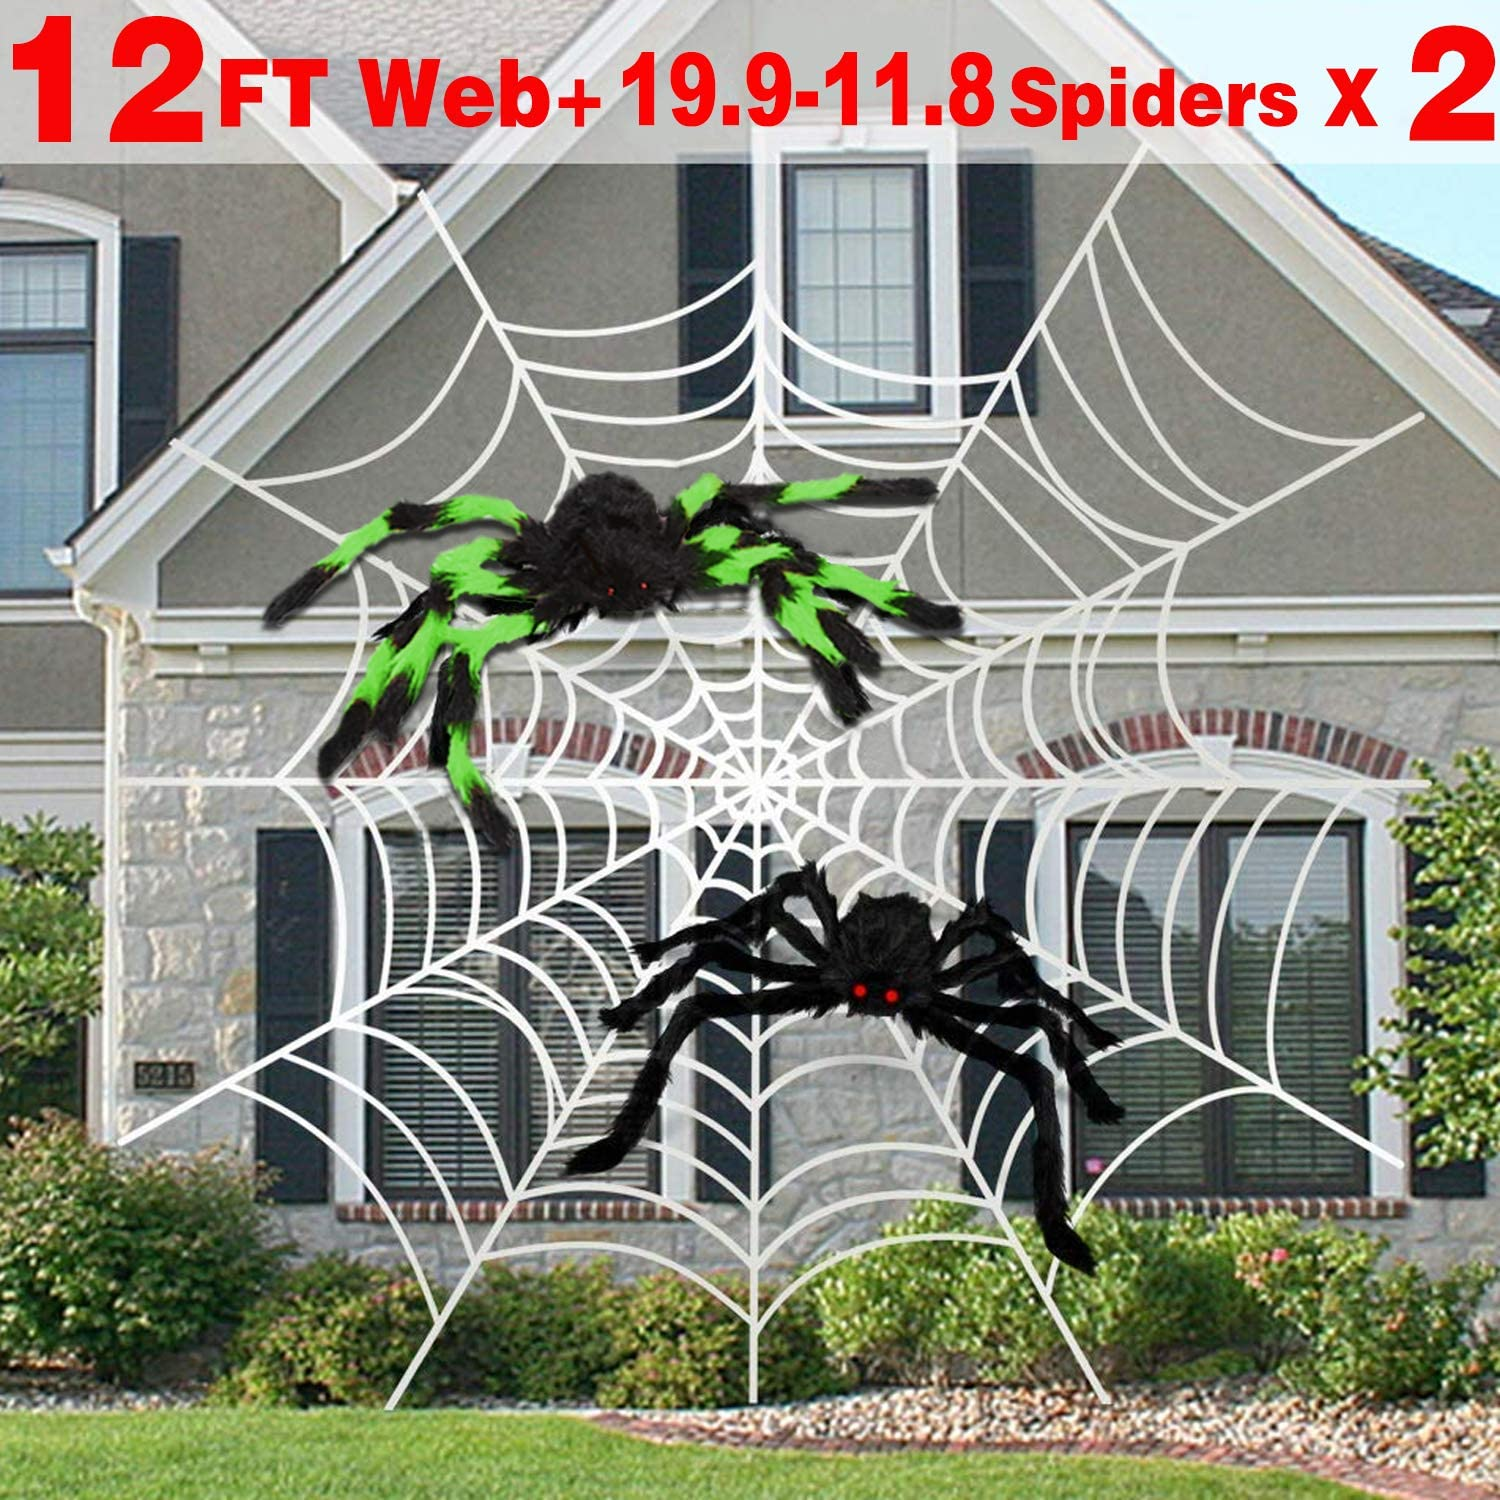 """AMENON Halloween Outdoor Decorations 12 Feet Halloween Round Spider Web with 2 Spider 19 7"""" 11 8"""" Realistic Looking Hairy Spider White Cobweb"""